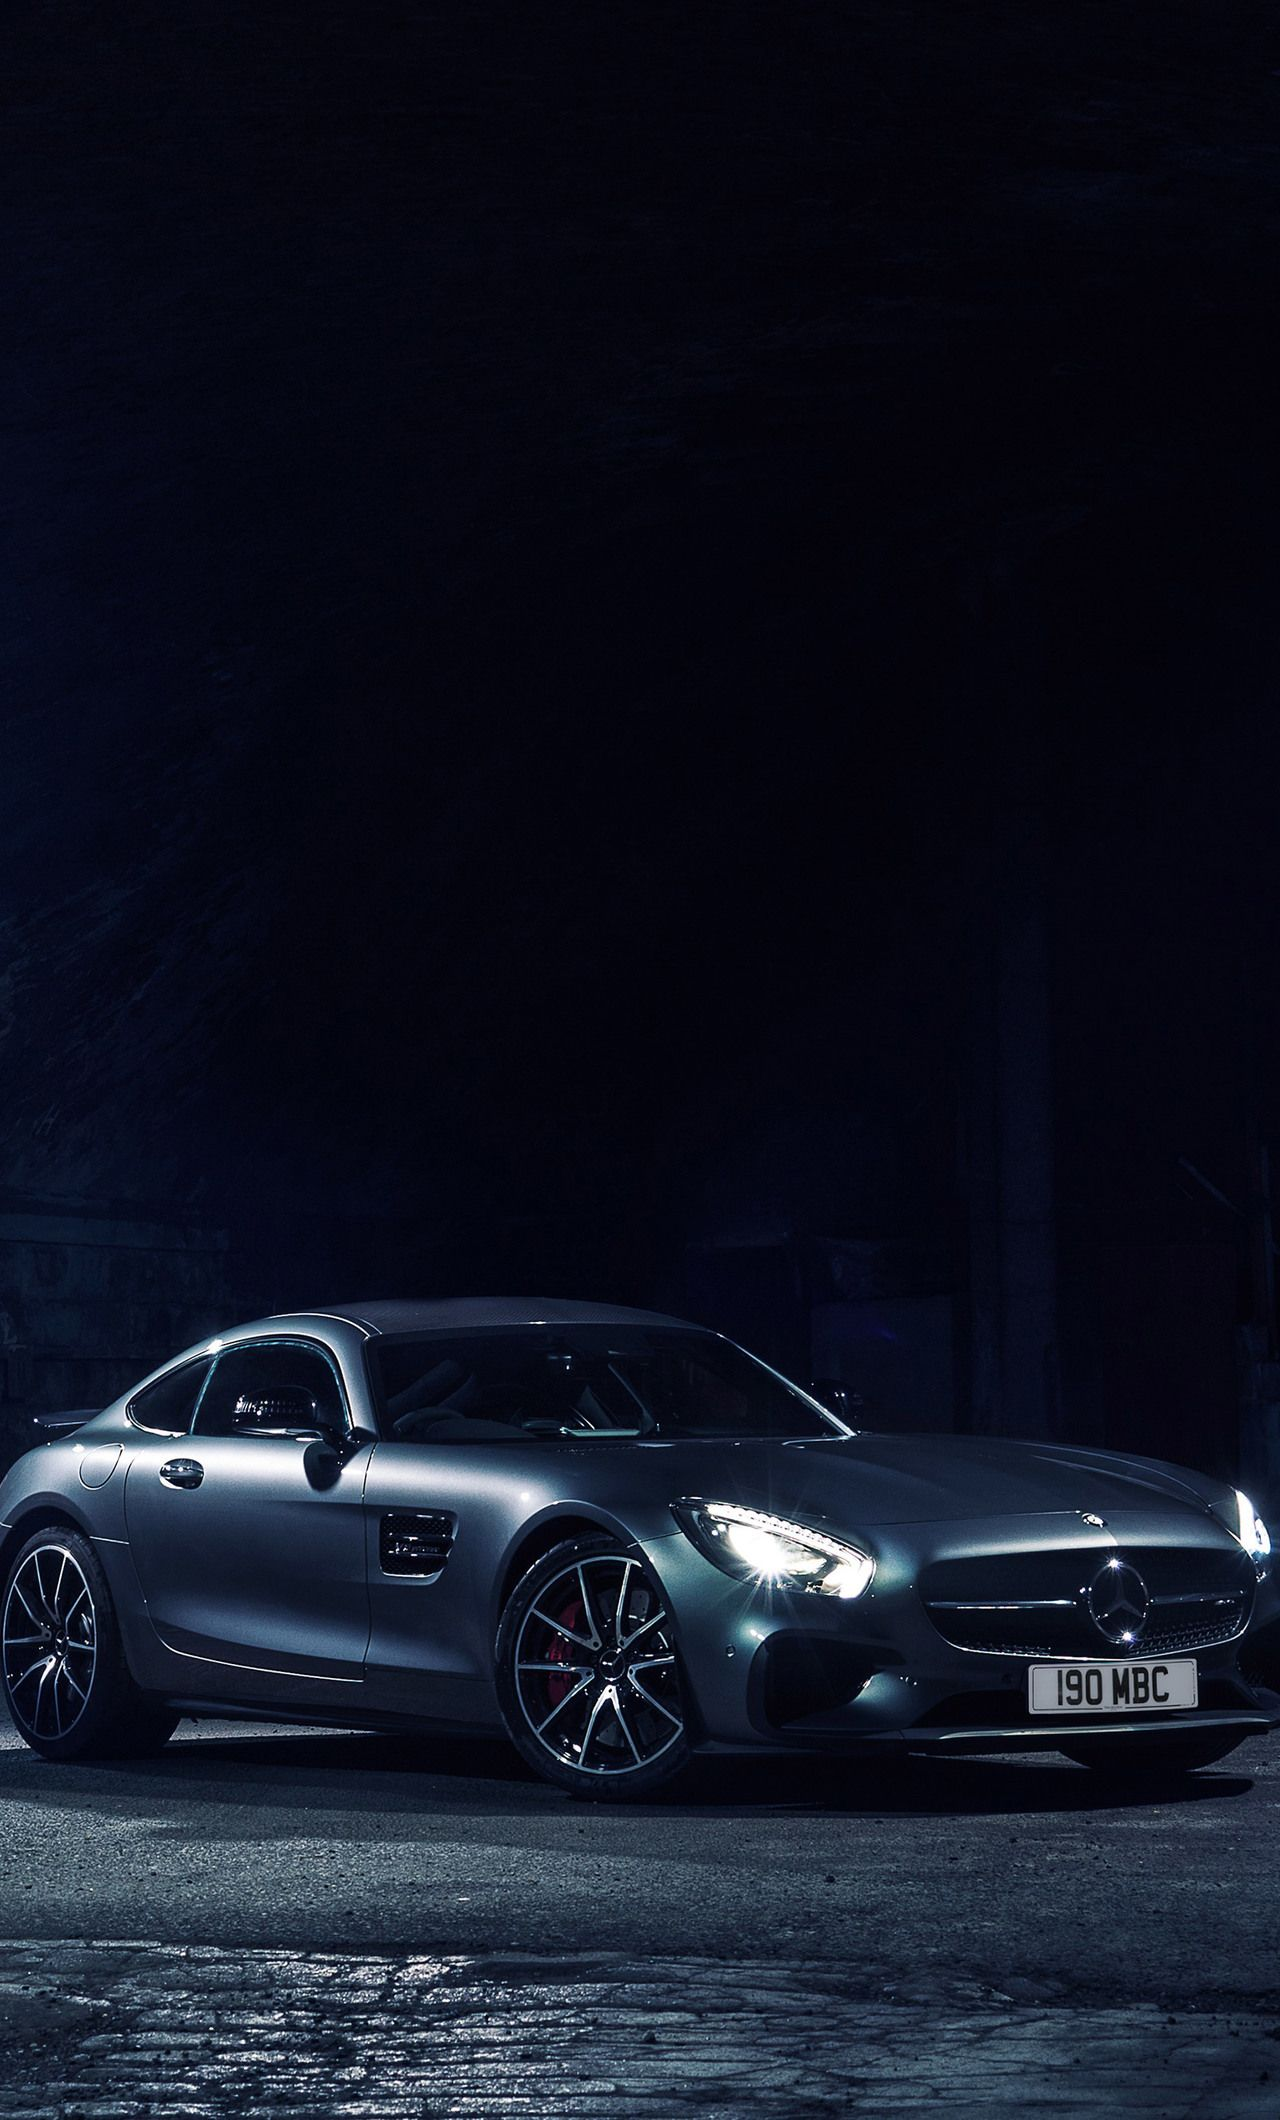 Mercedes Benz Iphone Wallpapers Top Free Mercedes Benz Iphone